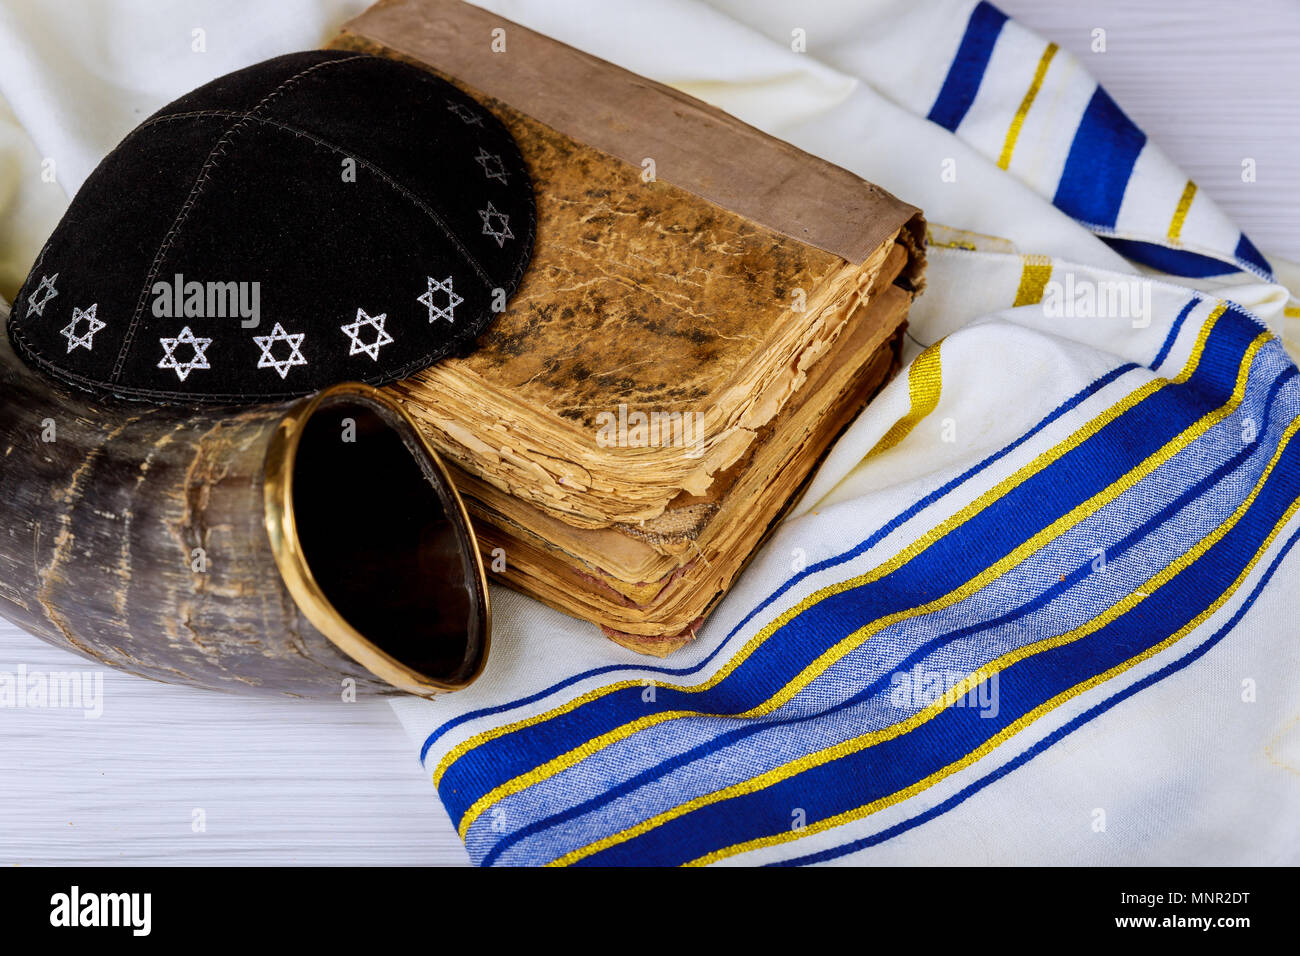 Tallit And Shofar Horn Jewish Religious Symbol Prayer Shawl Stock